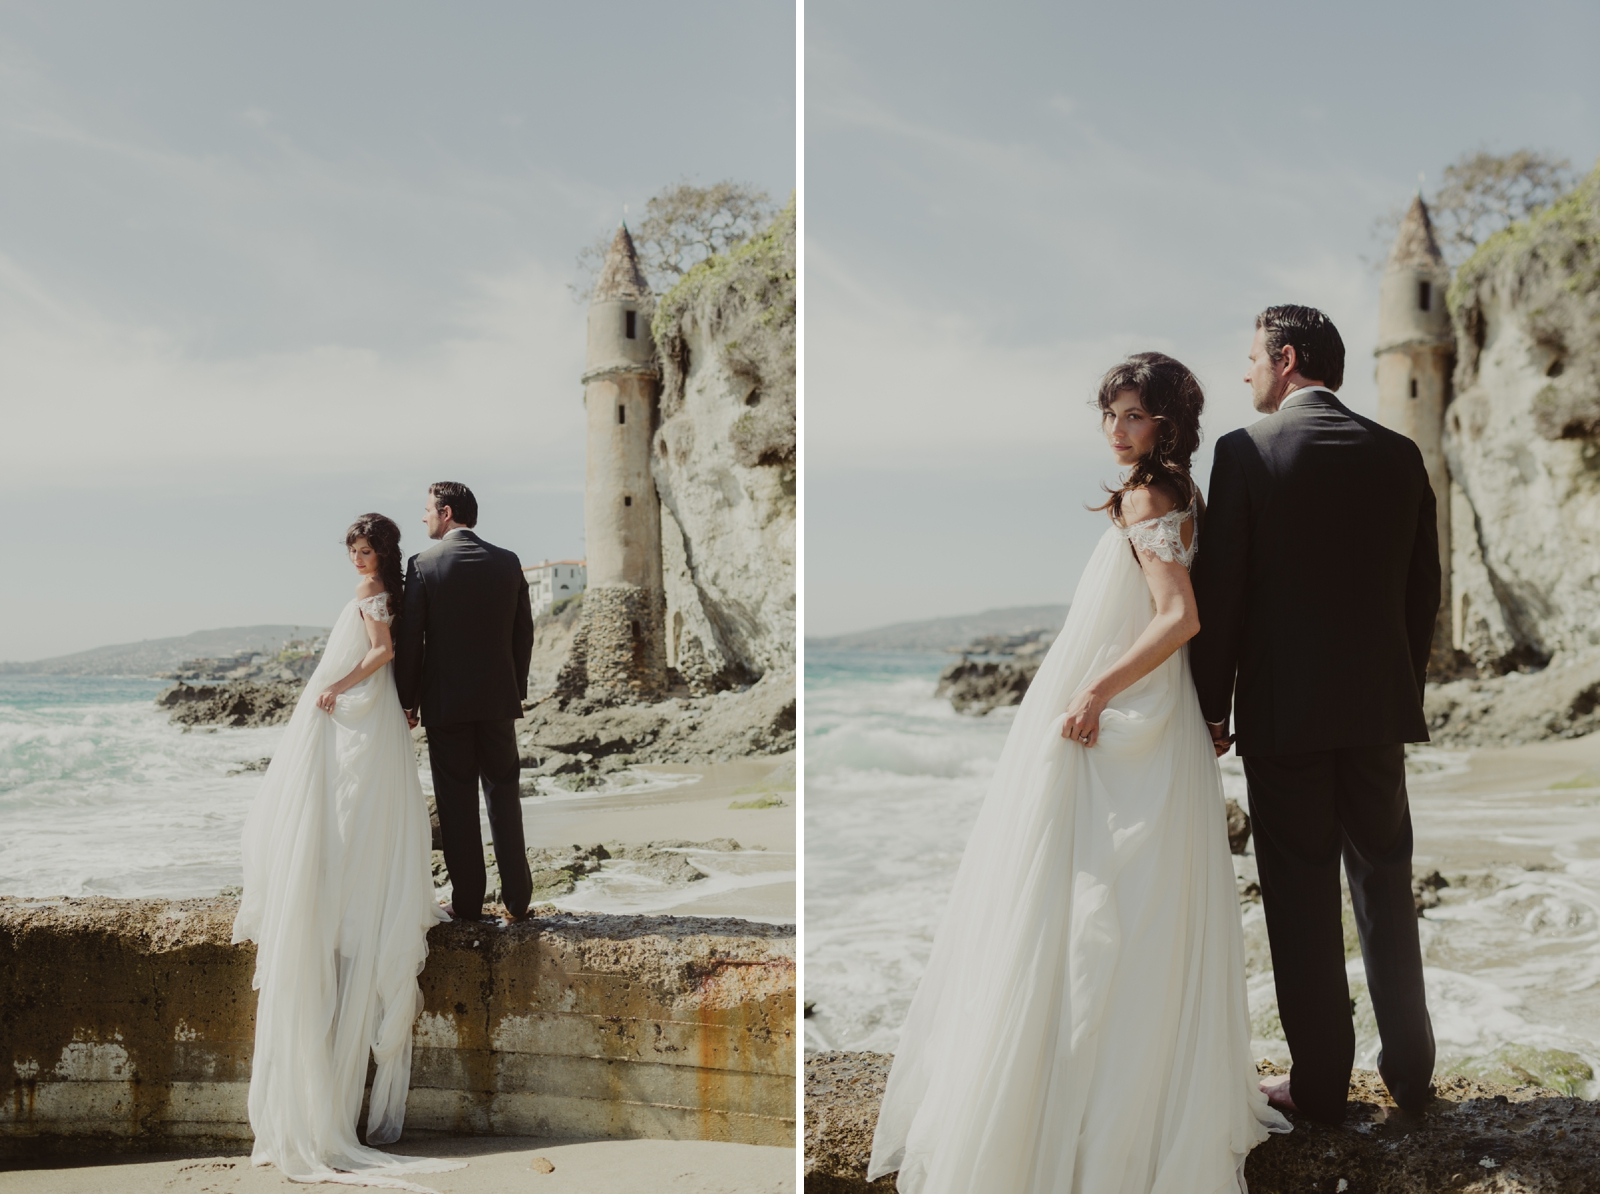 Kevin+Angie-Married-Blog-00011.jpg